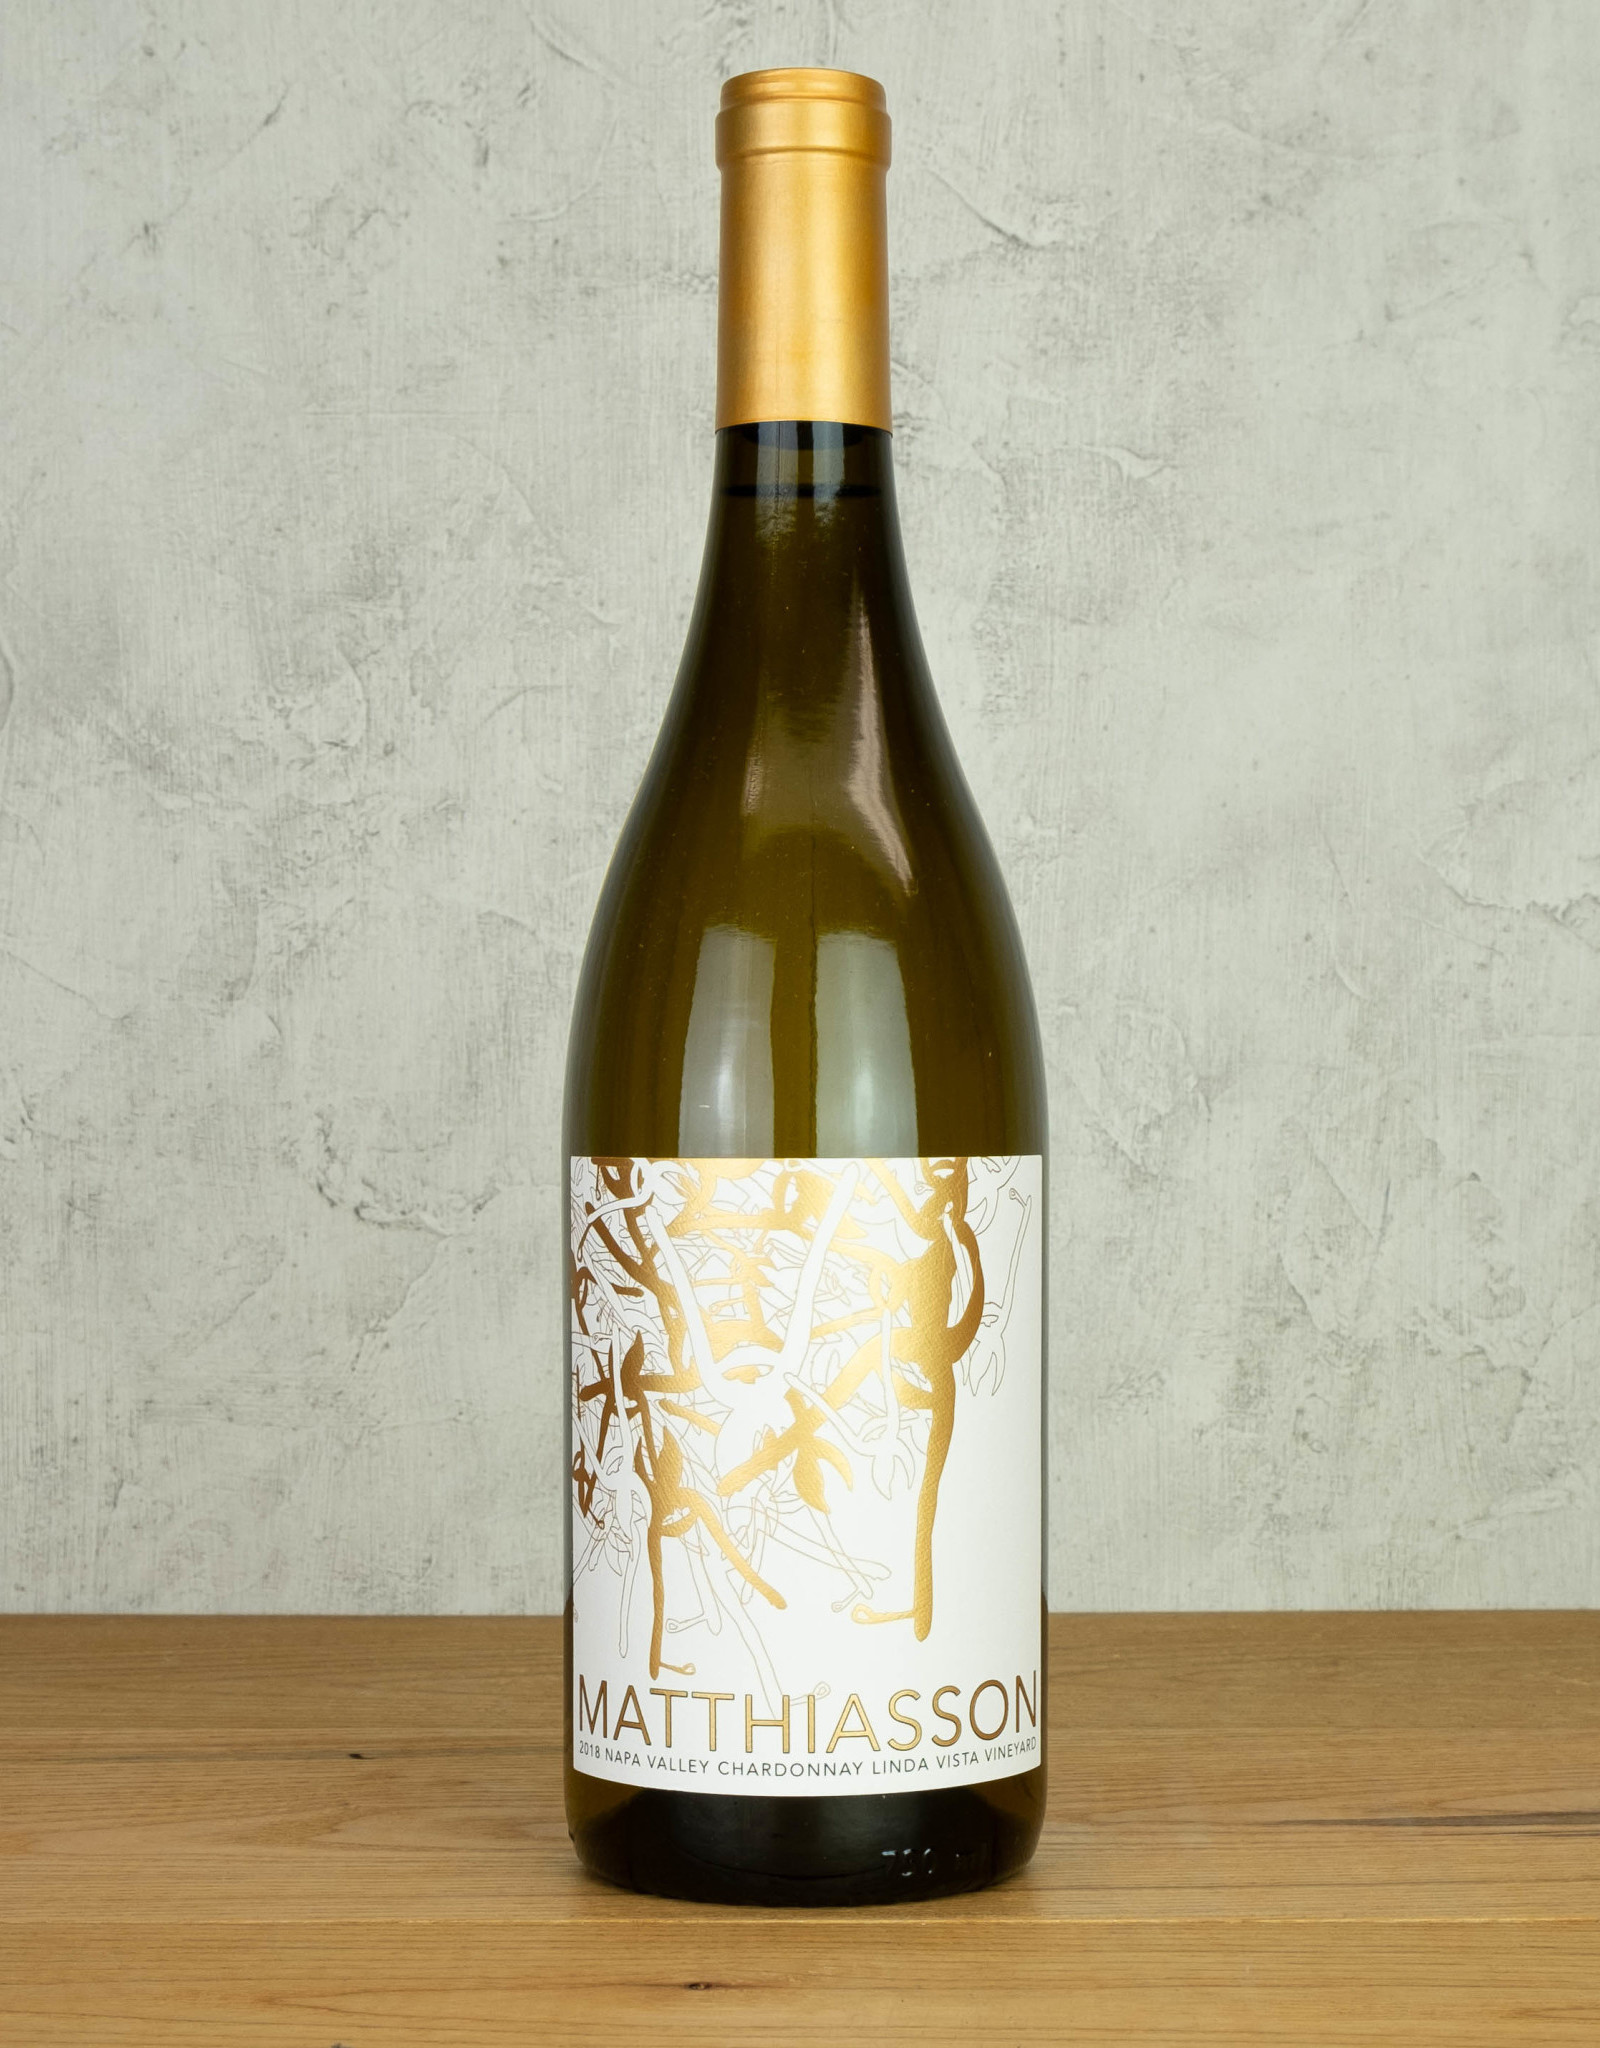 Matthiasson Chardonnay Linda Vista Vineyard